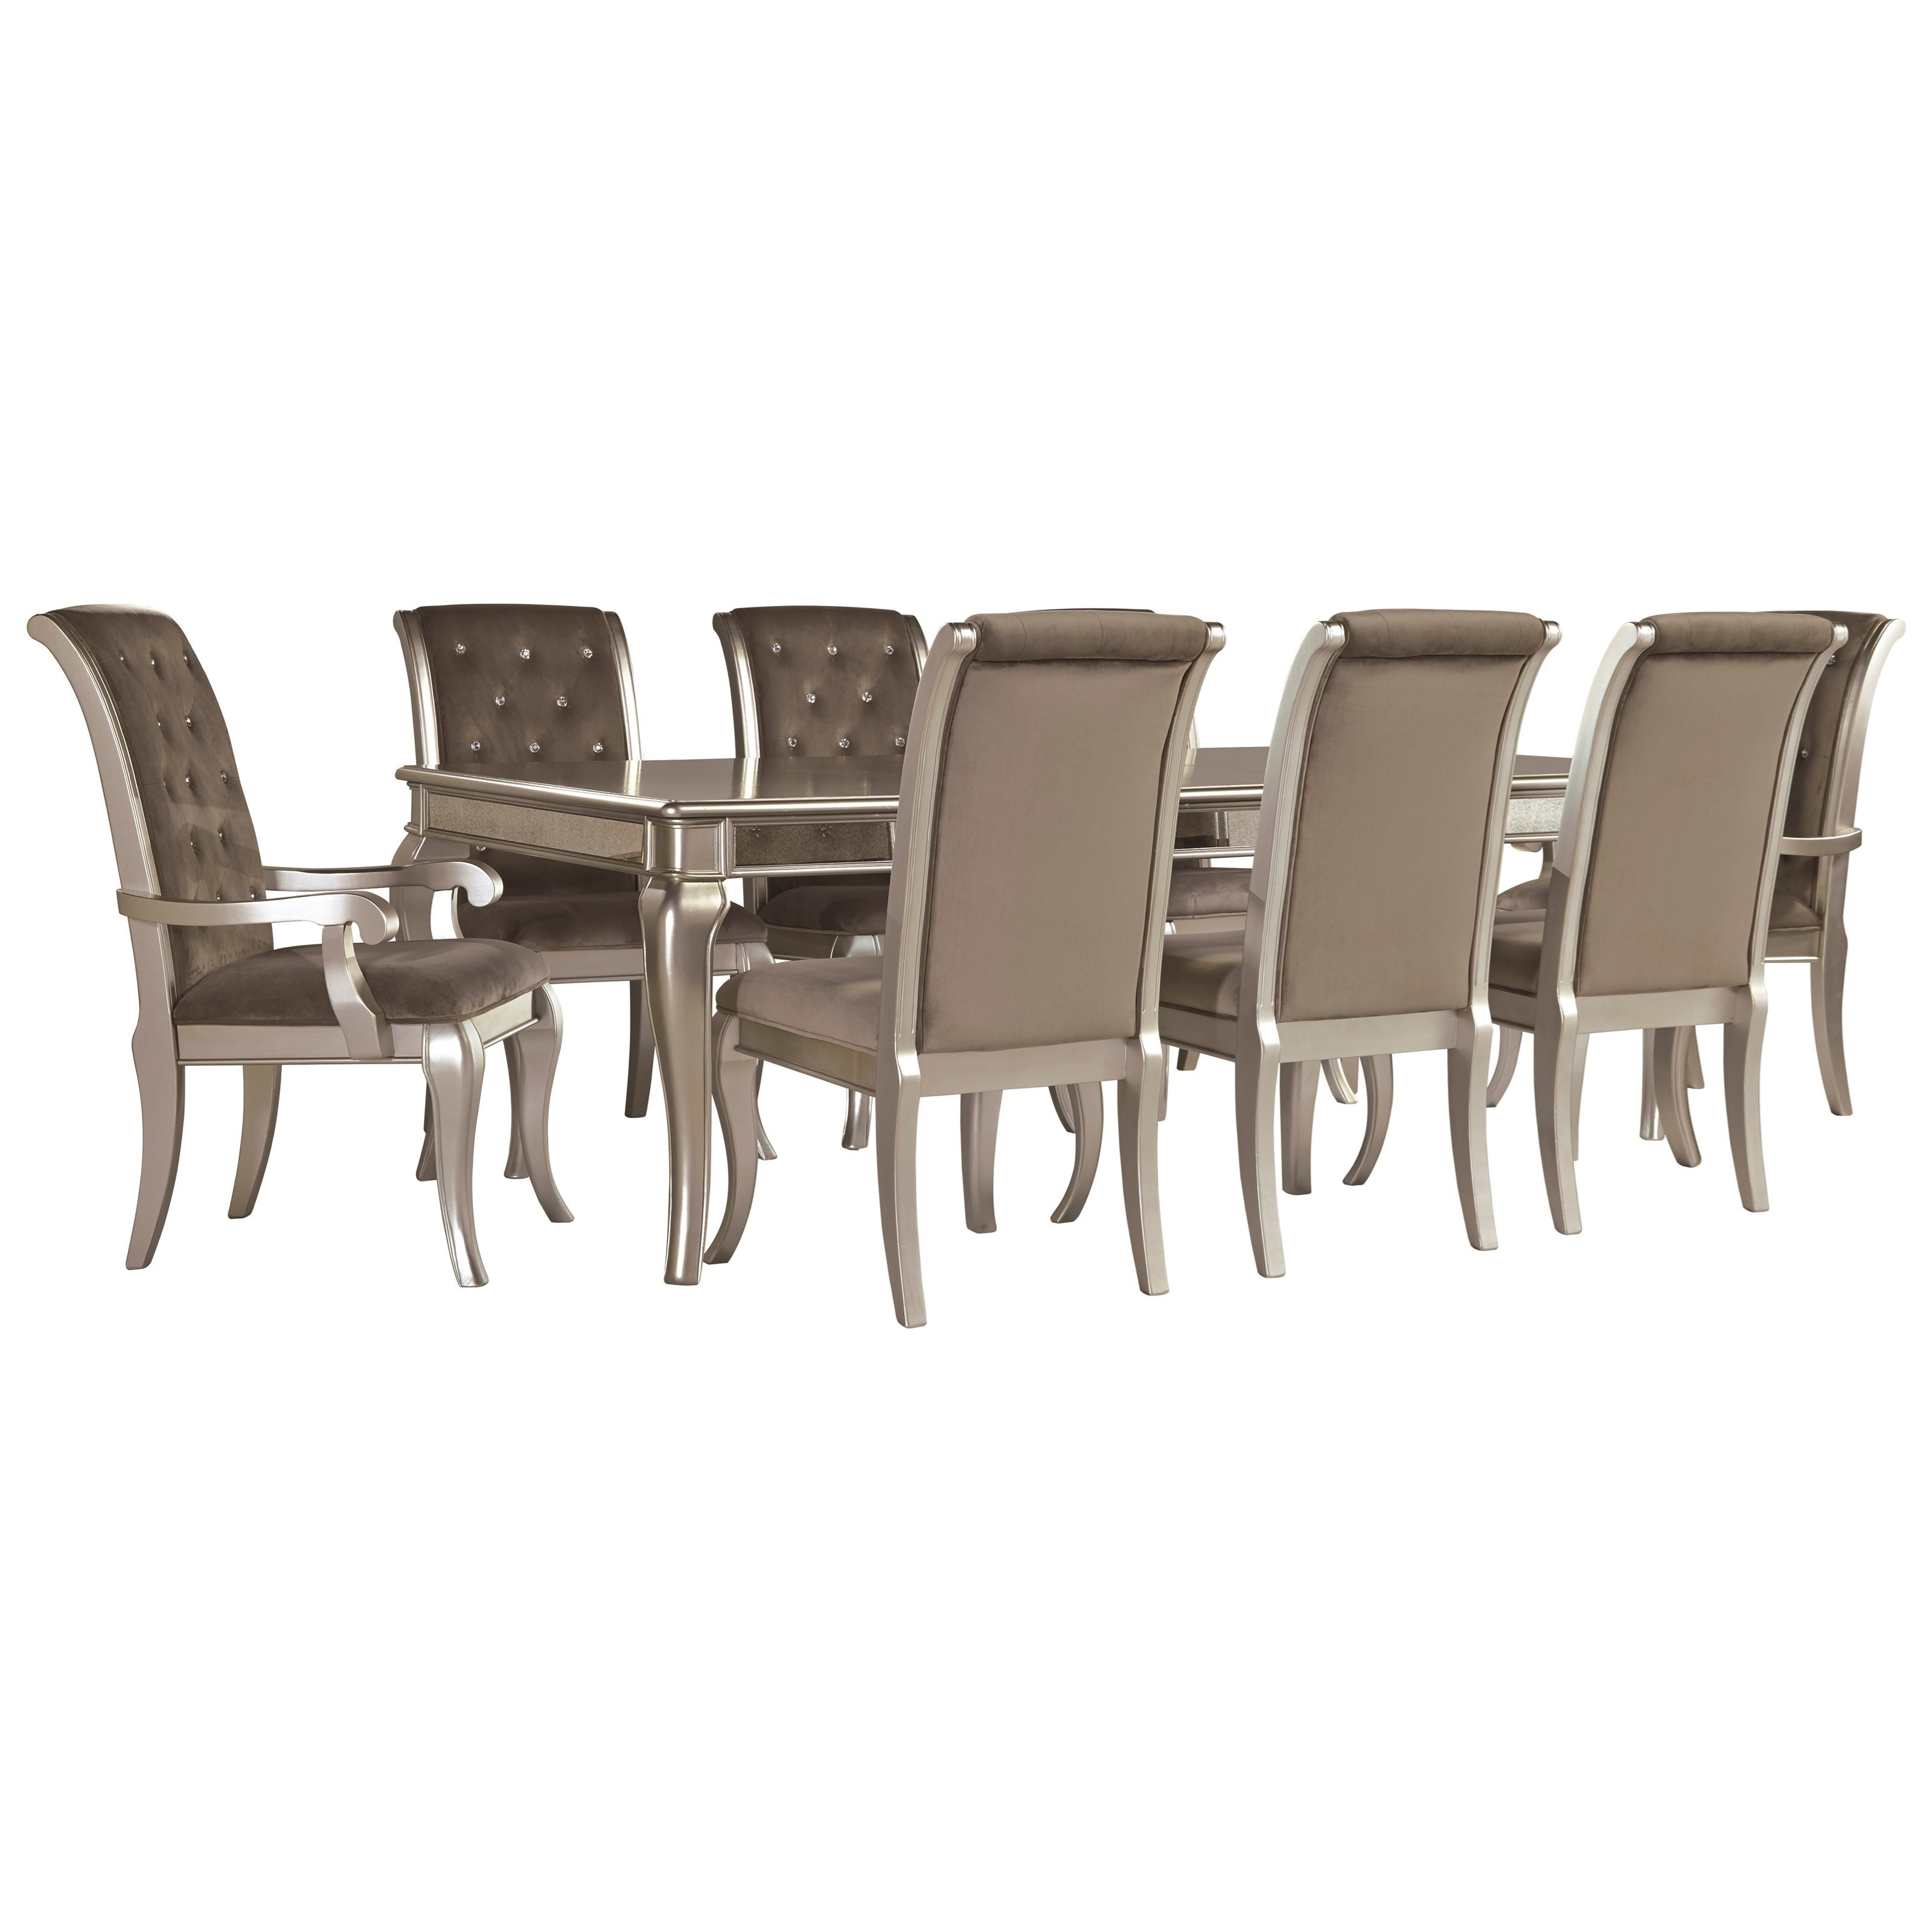 Signature Design by Ashley Birlanny Glam 9-Piece Rectangular Dining Table Set in Silver Finish  sc 1 st  Wayside Furniture & Signature Design by Ashley Birlanny Glam 9-Piece Rectangular Dining ...